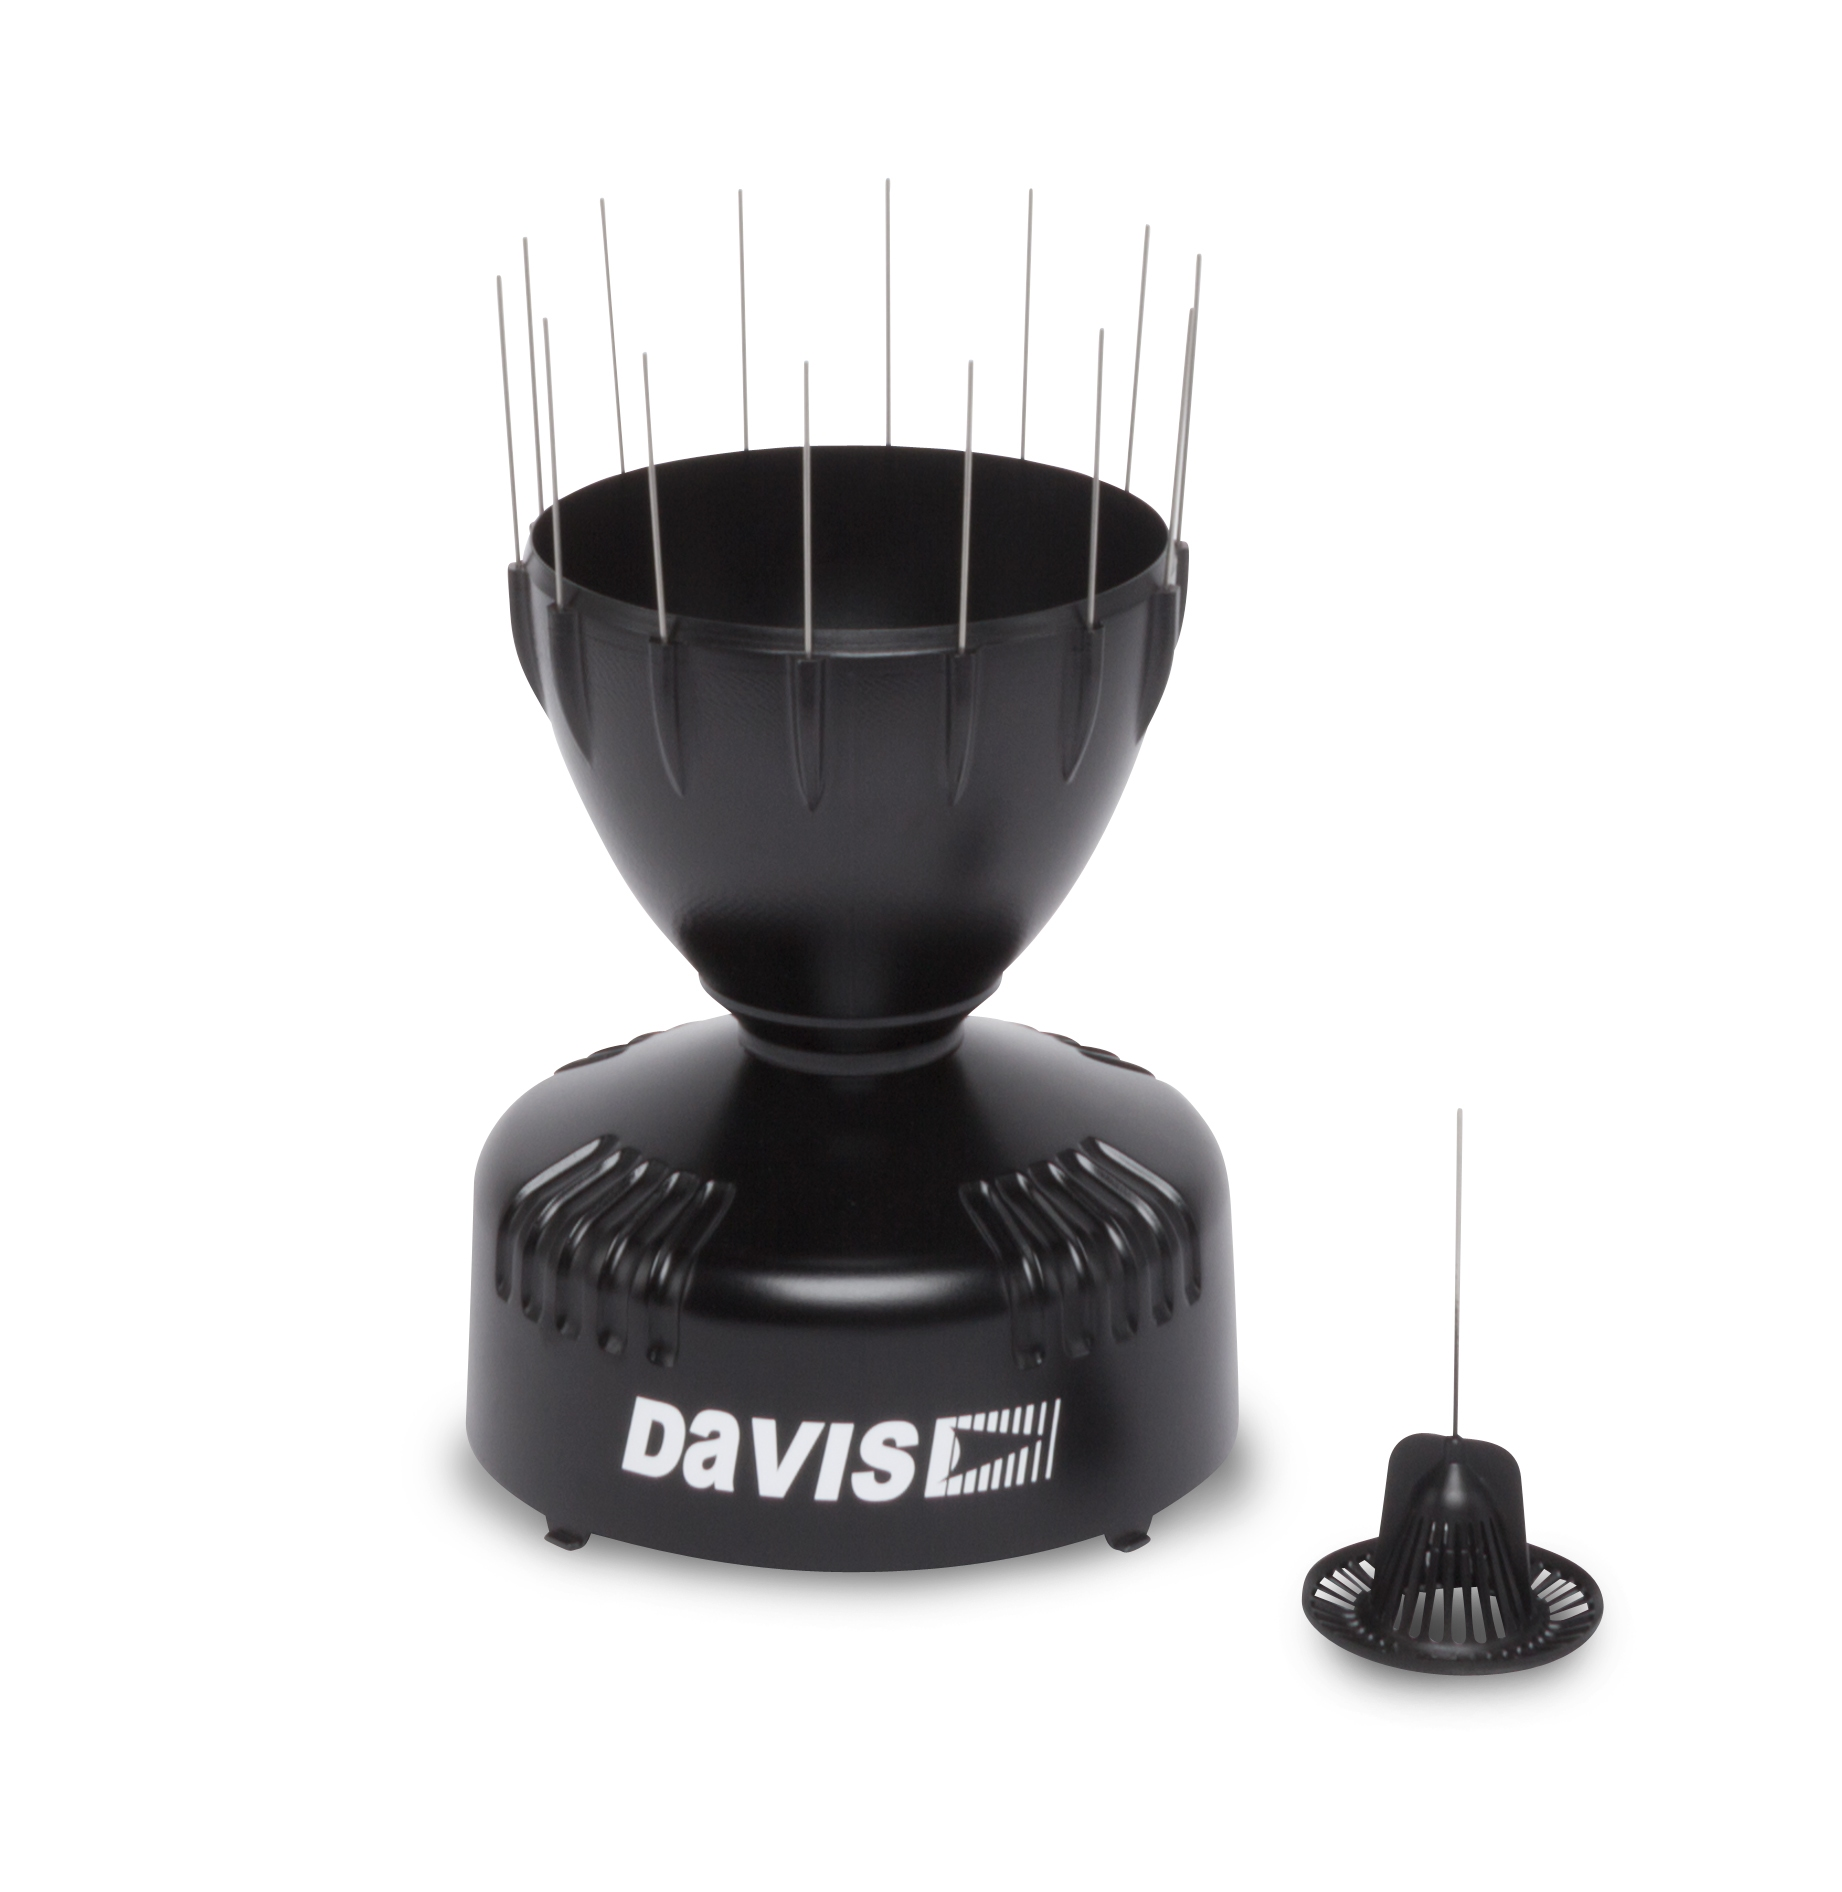 Davis 6163 Vantage Pro 2Plus + fan professional weerstation